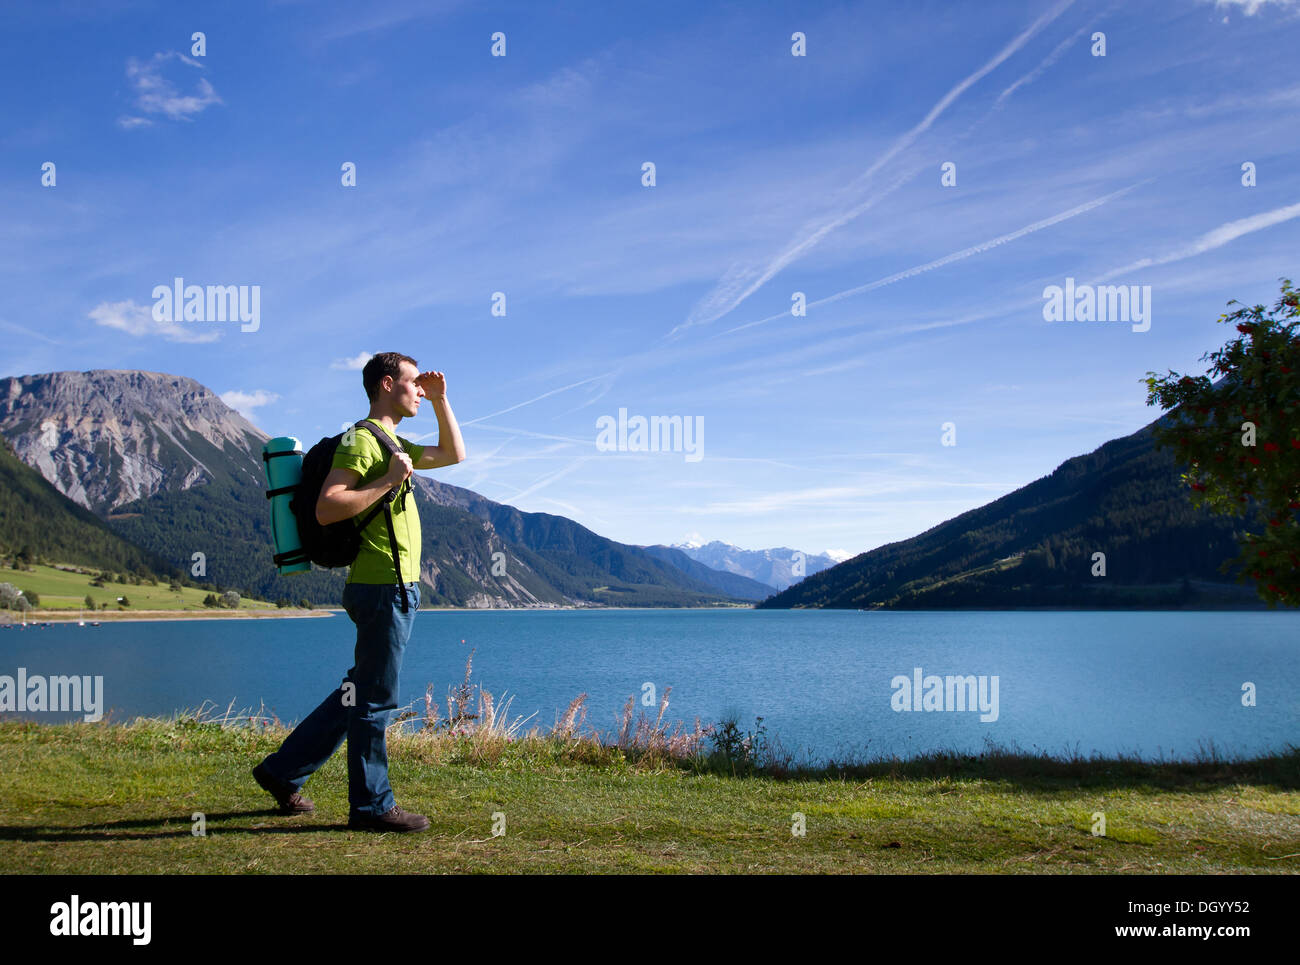 traveler in mountains looking forward, new vision - Stock Image